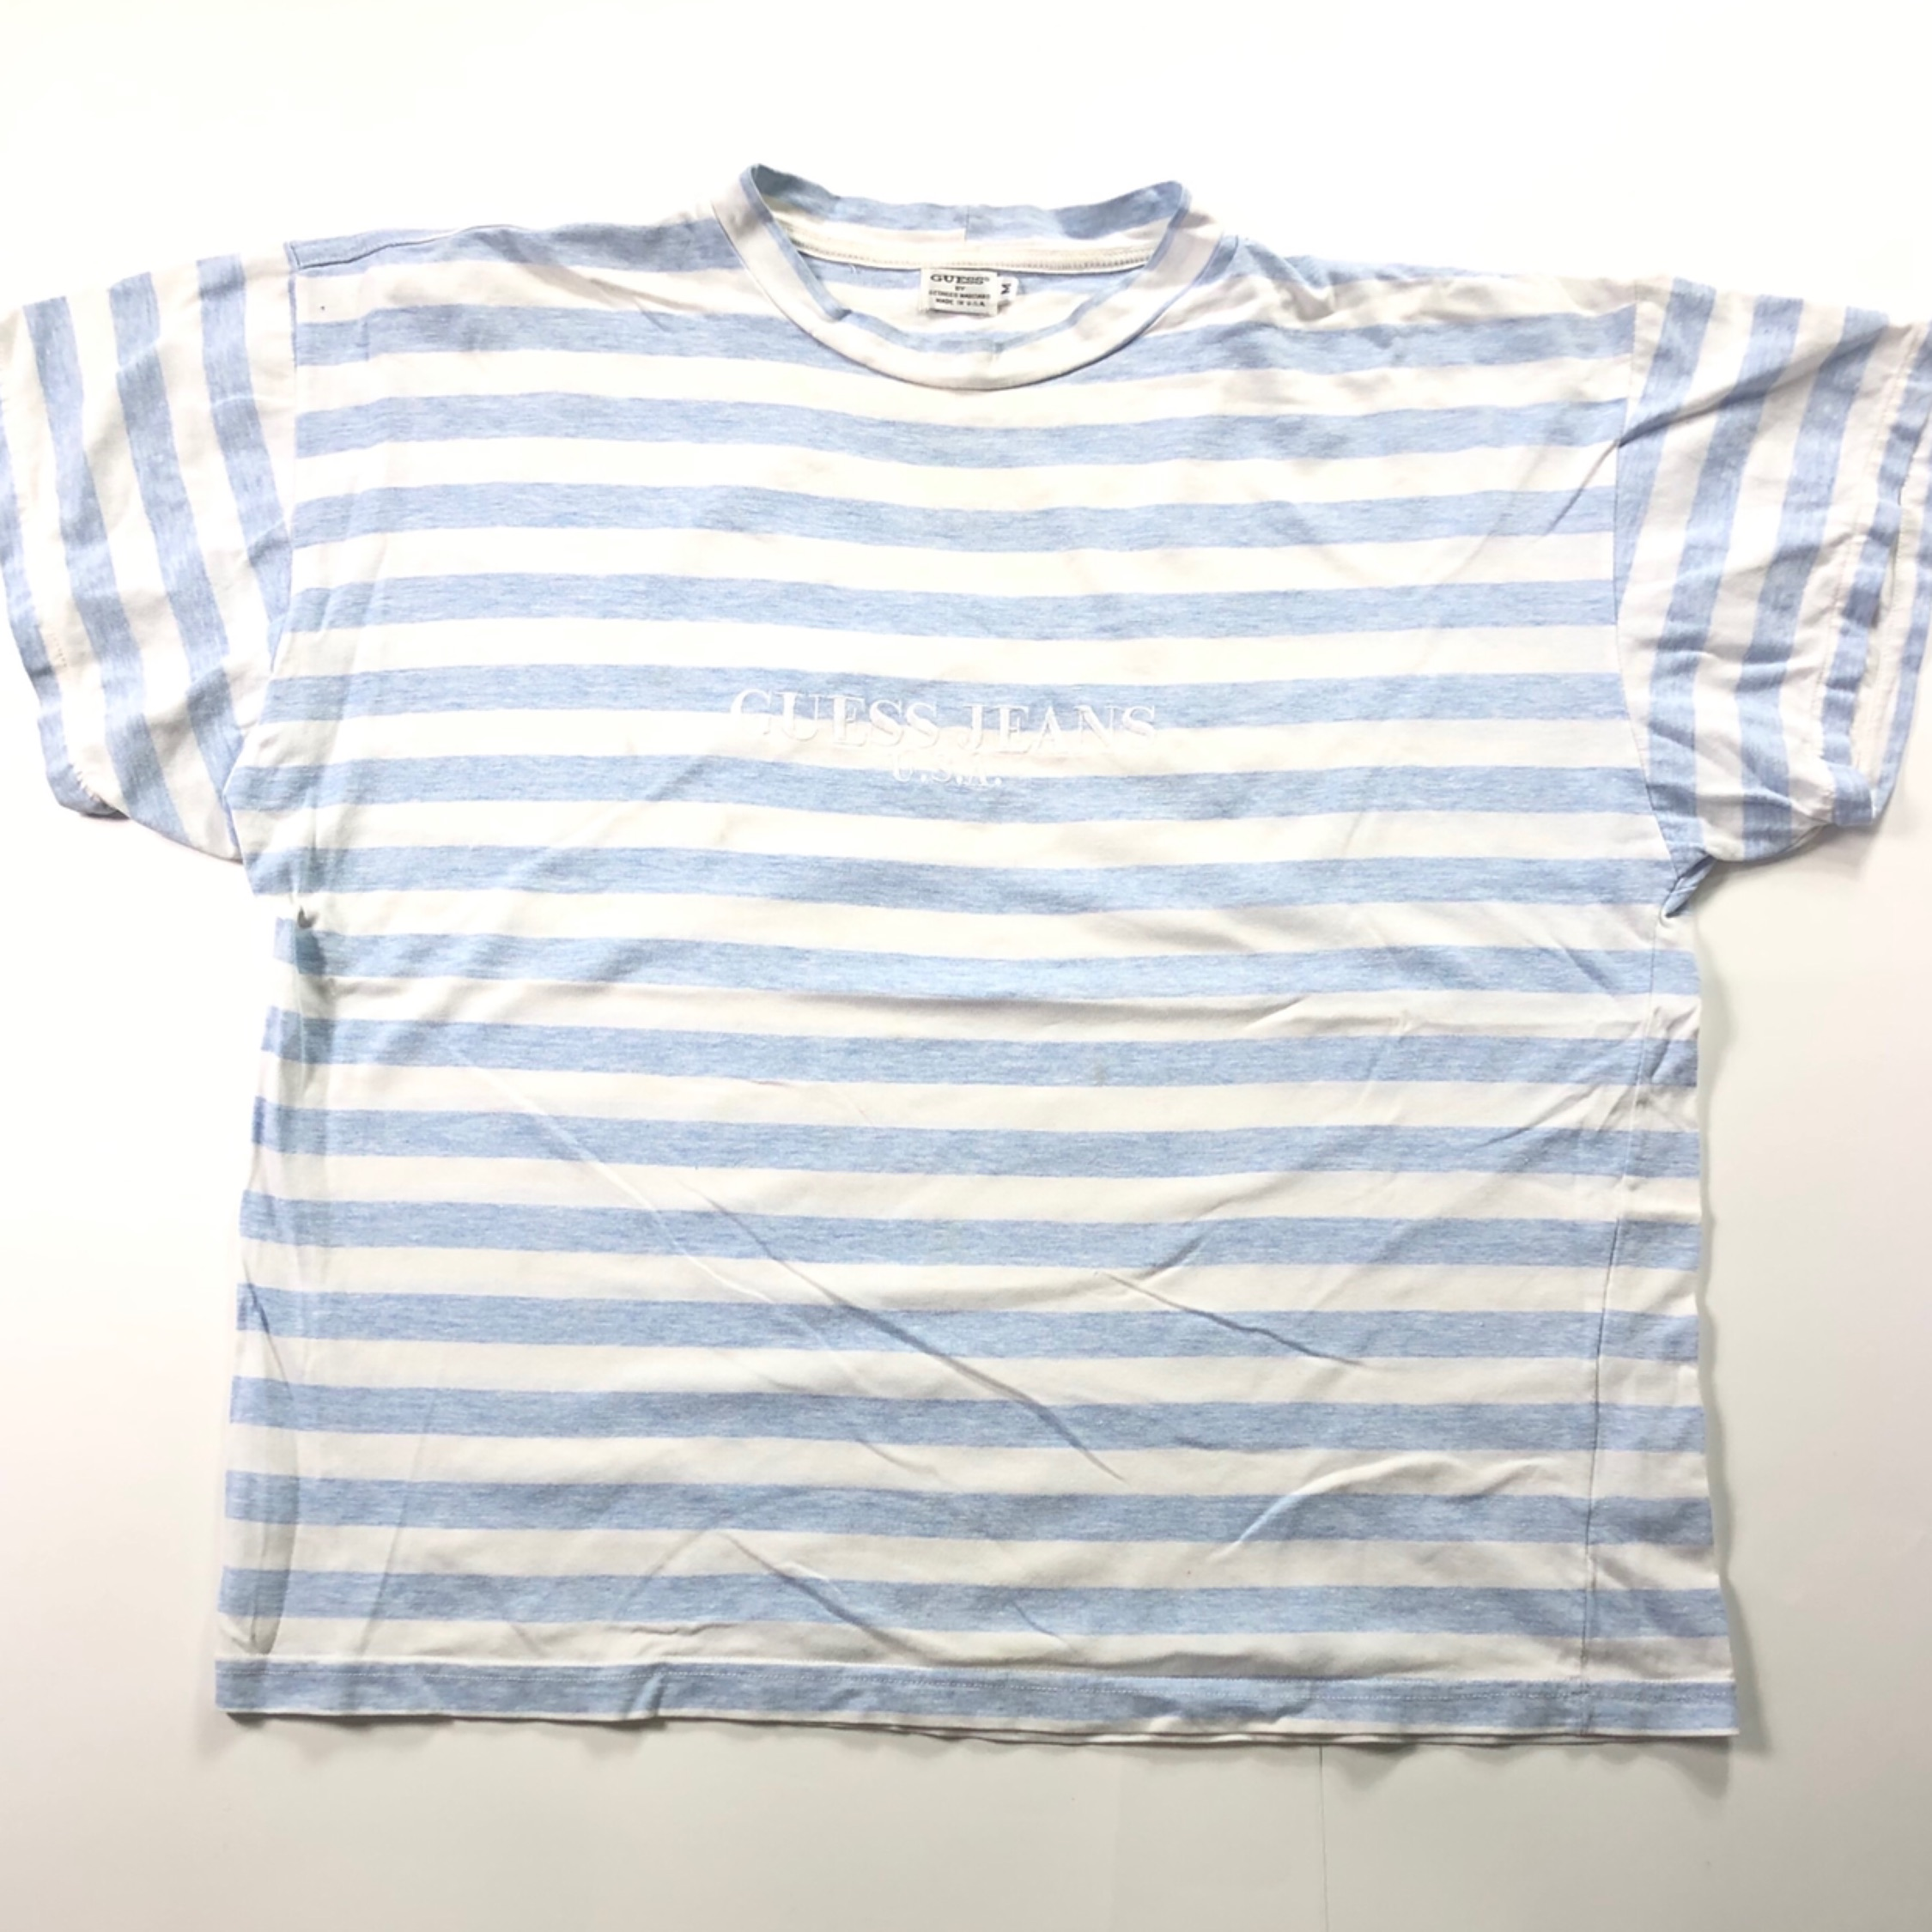 a76915030b60 Asap Rocky Guess Jeans Striped T Shirt - raveitsafe